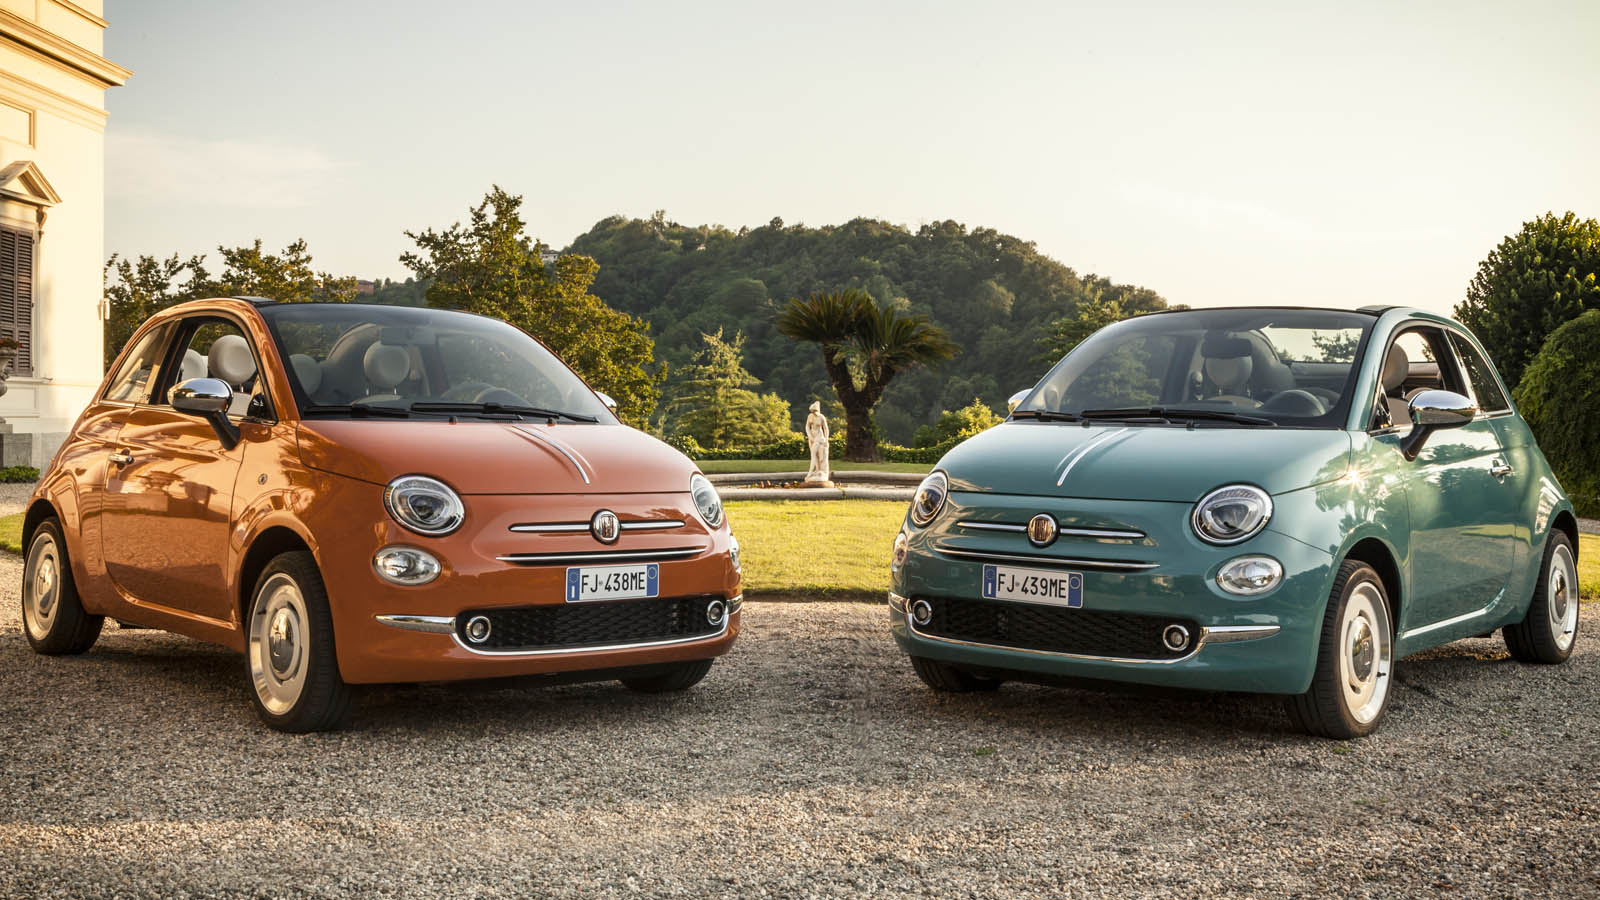 Fiat 500 Anniversario Edition marks the 60th anniversary of the original Cinquecento